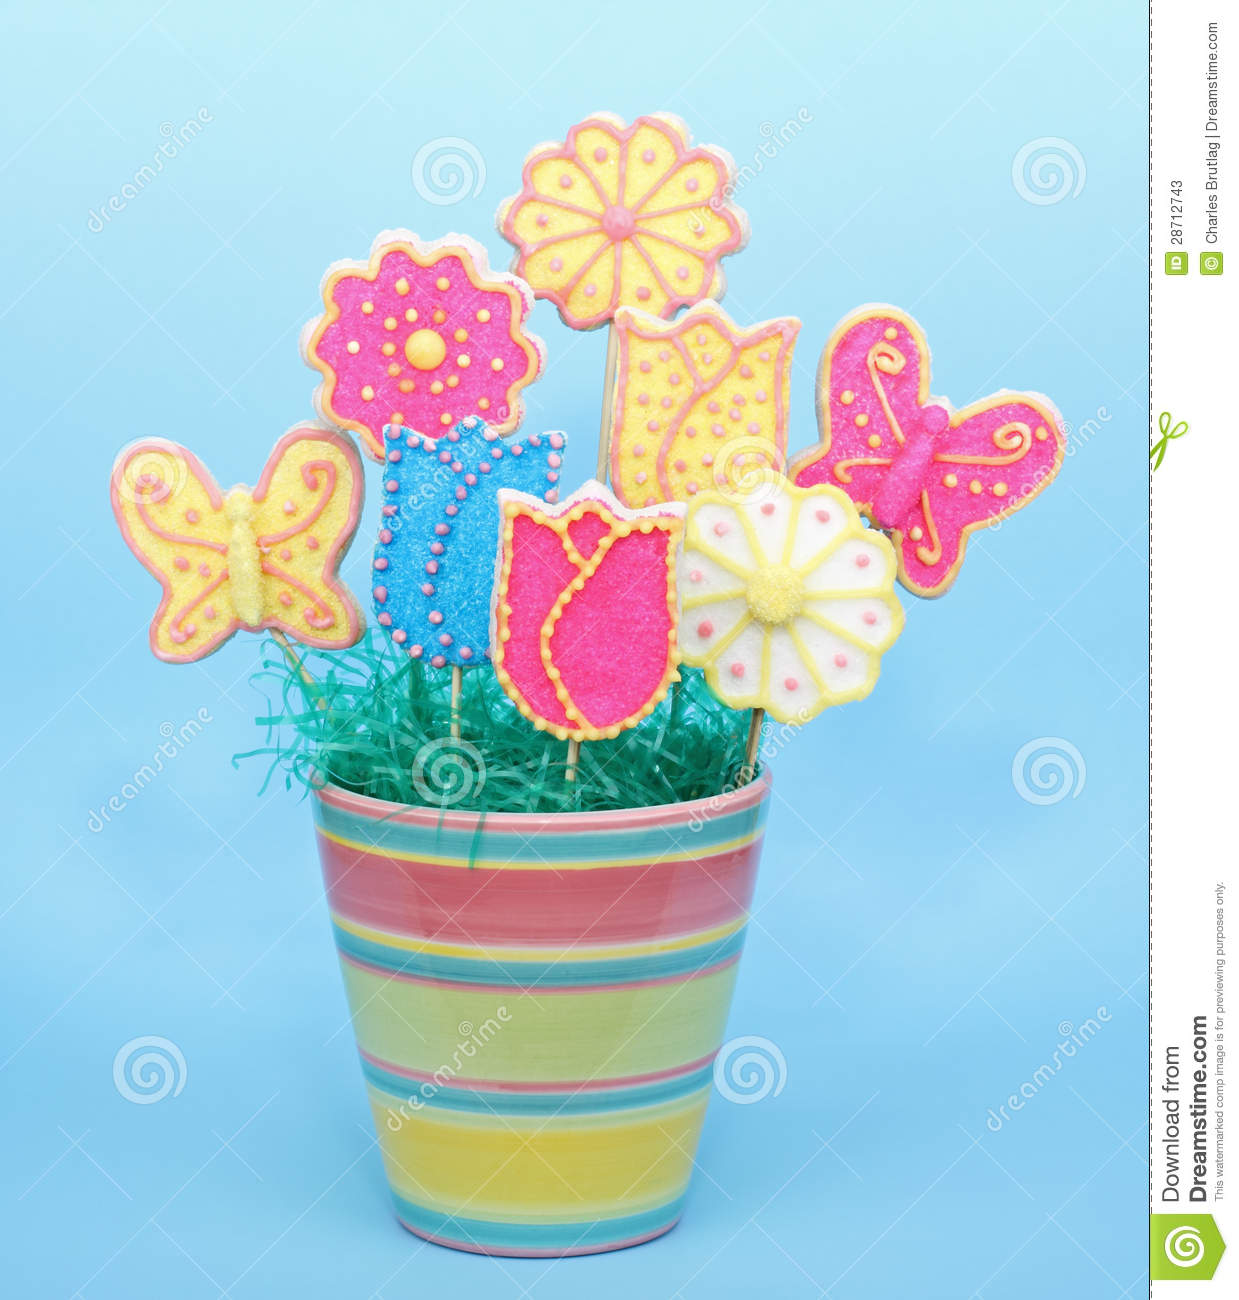 Sugar Cookie Bouquet stock image. Image of sugar, spring - 28712743